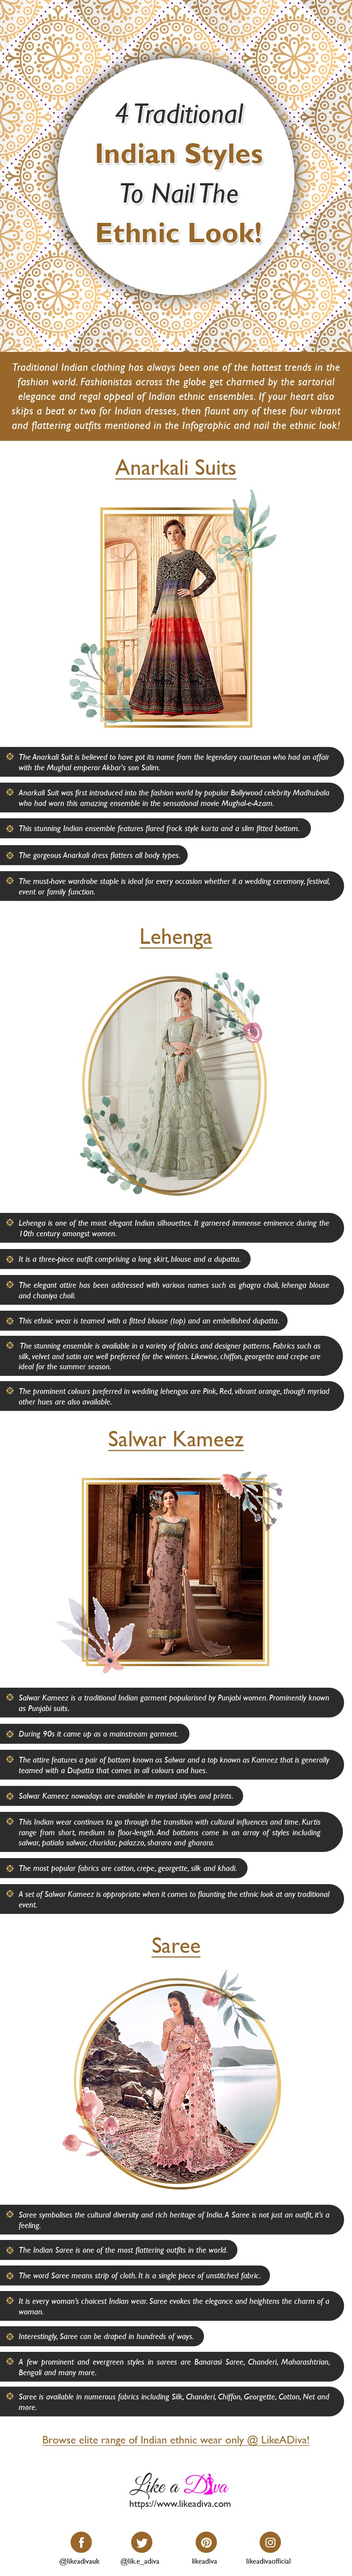 Infographic Traditional Indian Styles to Nail the Ethnic Look